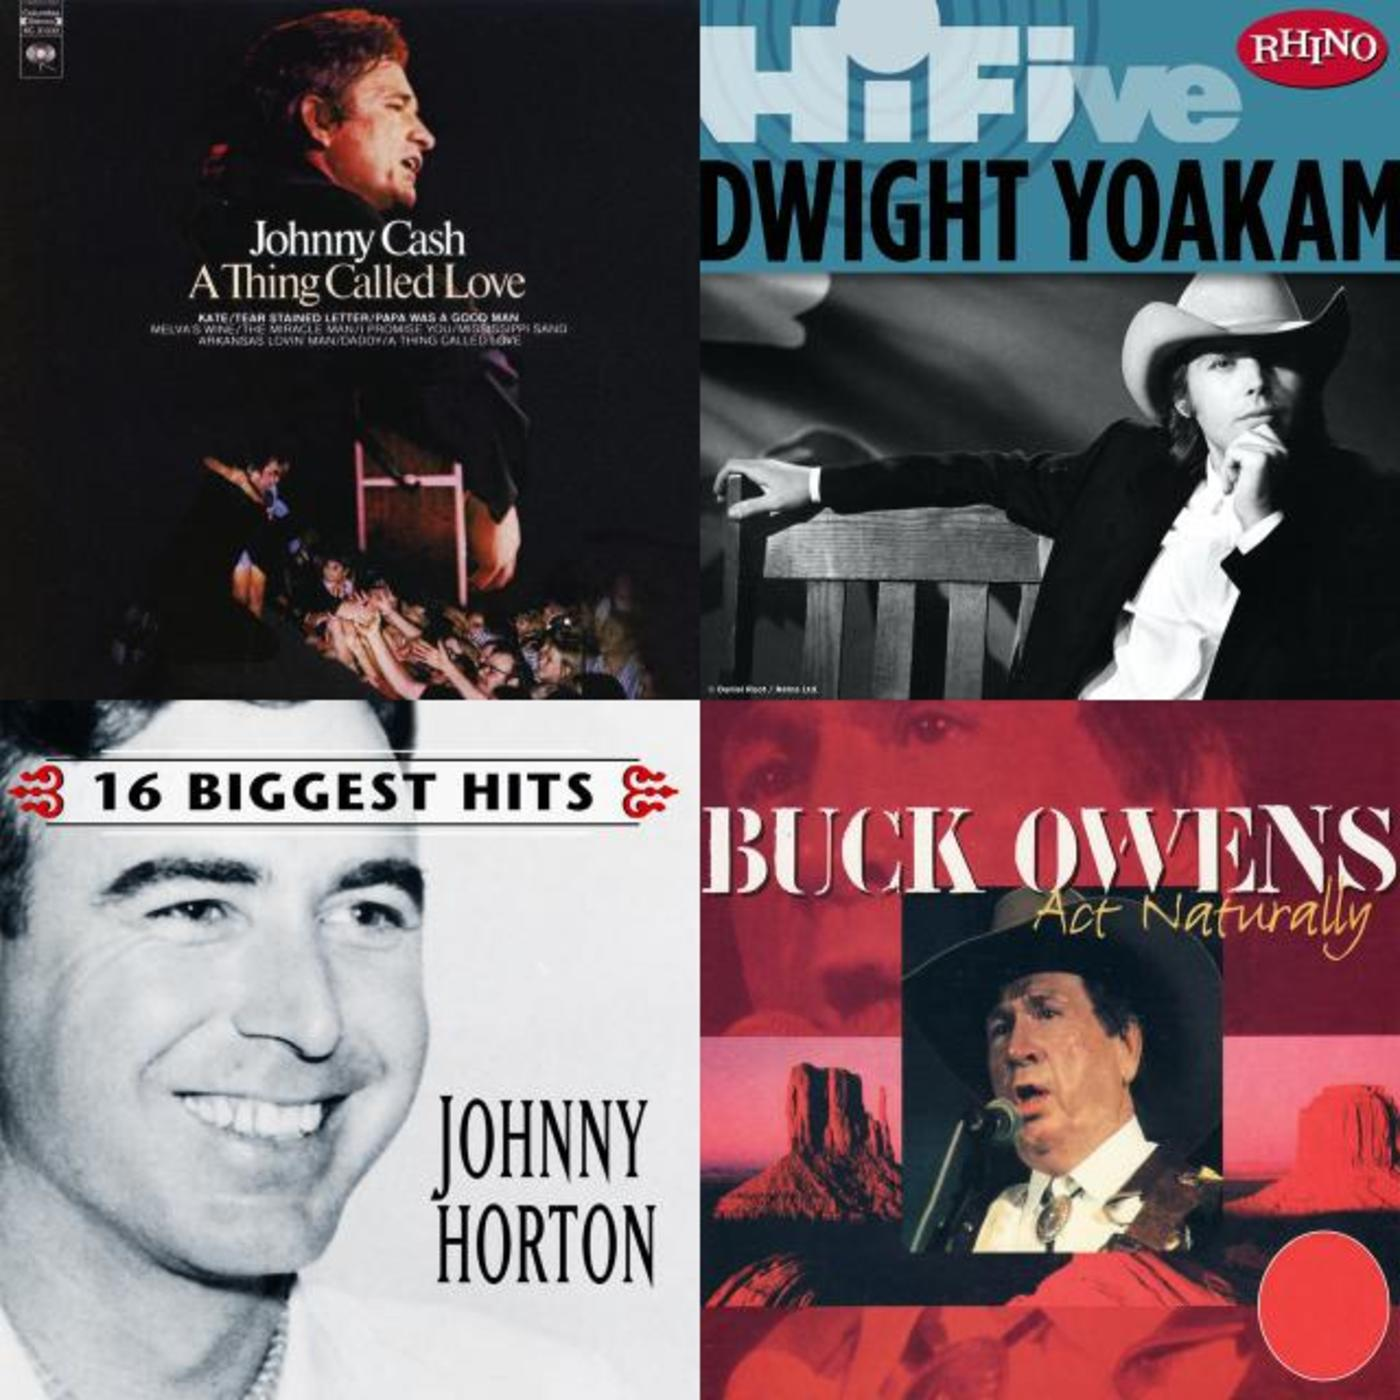 Dan Epstein's Honky Tonk Playlist - Johnny Horton, Dwight Yoakam, Buck Owens, Johnny Cash, Tanya Tucker, Merle Haggard, Glen Campbell, Dave Edmunds, Elvis Costello and The Attractions